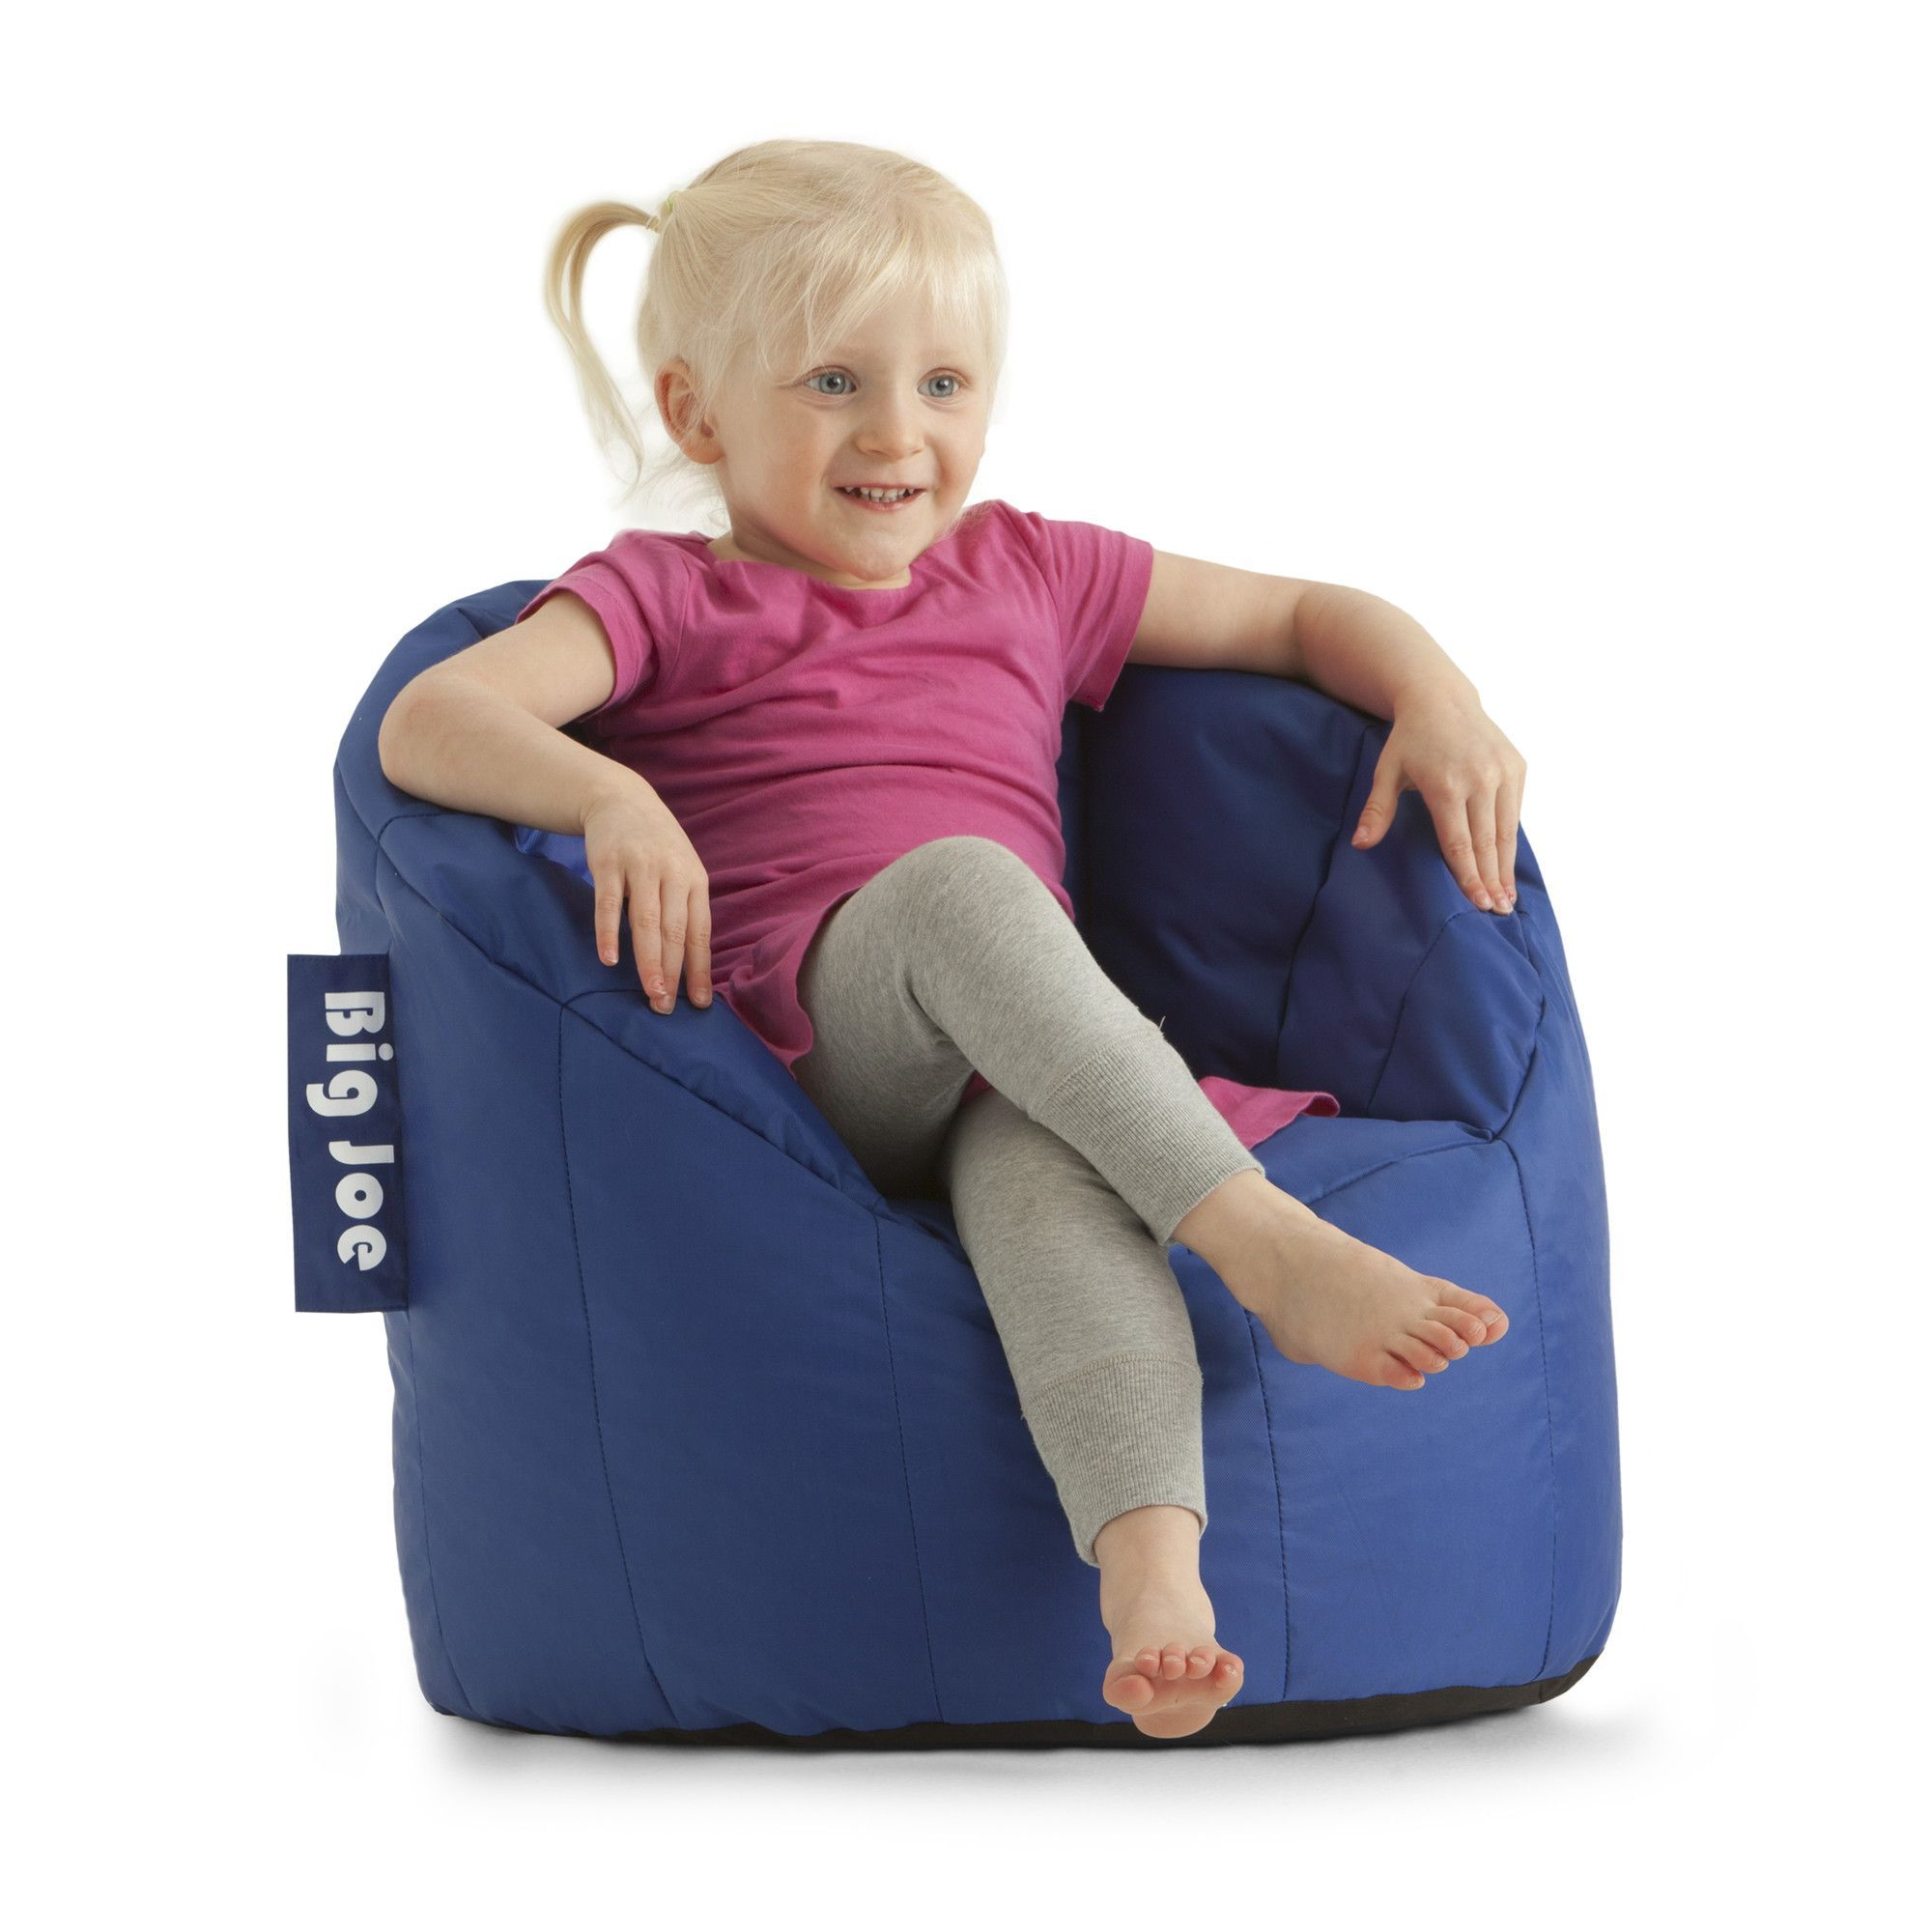 Merveilleux Big Joe Kids Bean Bag Lounger